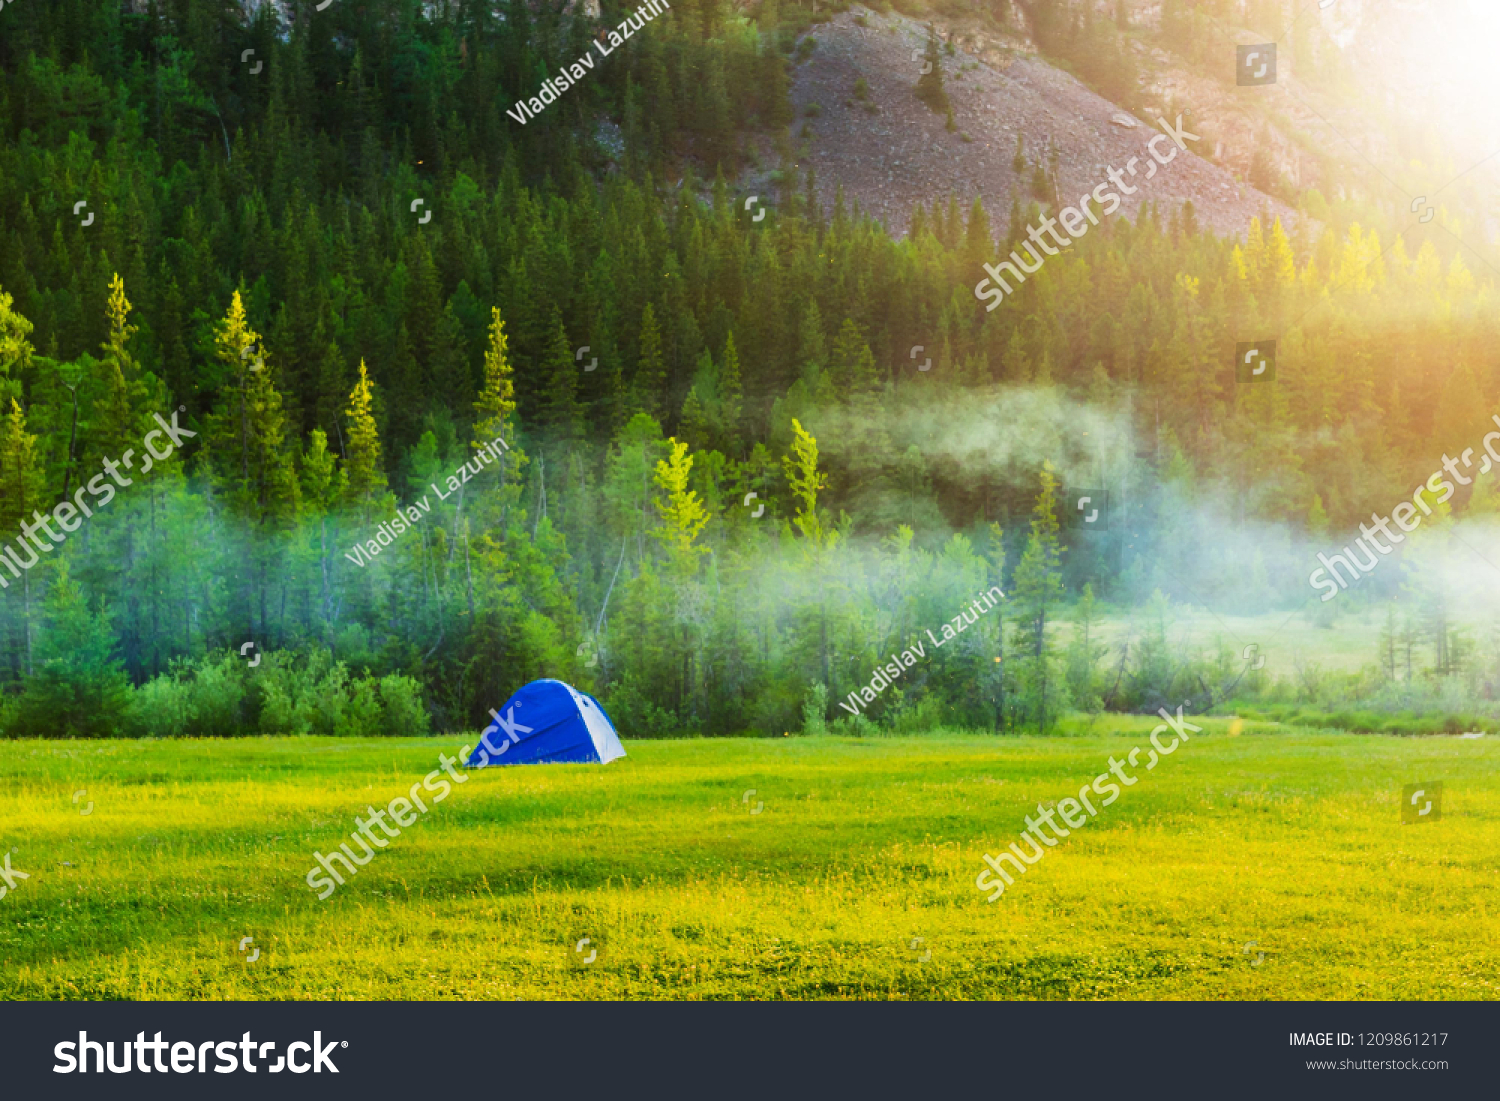 Tourist tent at the foot of the mountains. Camping on the grass near the mountain in the rays of the evening sun. Mountain landscape and sunset. #1209861217